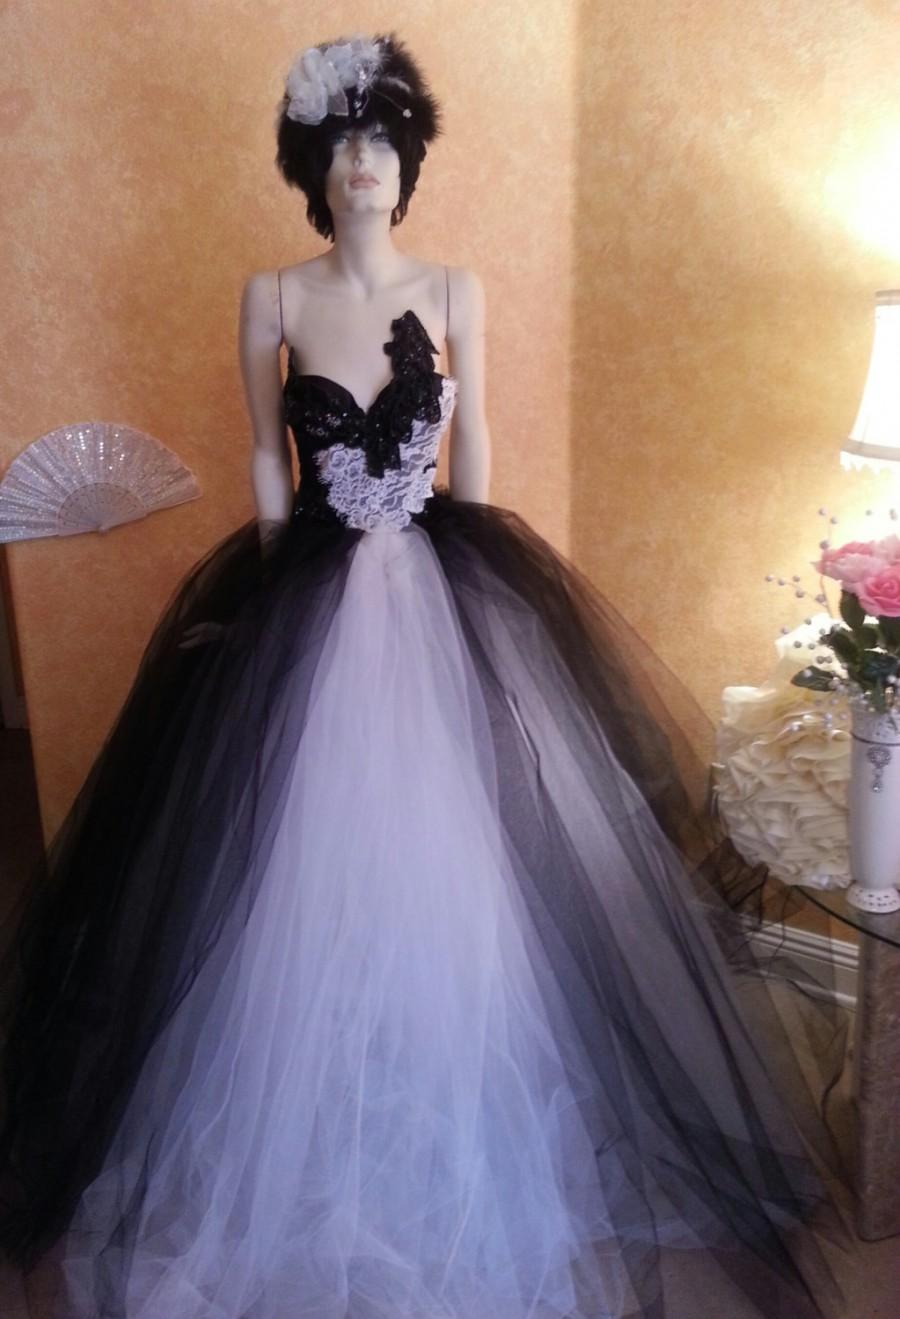 Mariage - Russian Goddess Black & White Tulle Crystal Sequin Lace Vintage Victorian Inspired Bridal Wedding Ball Gown